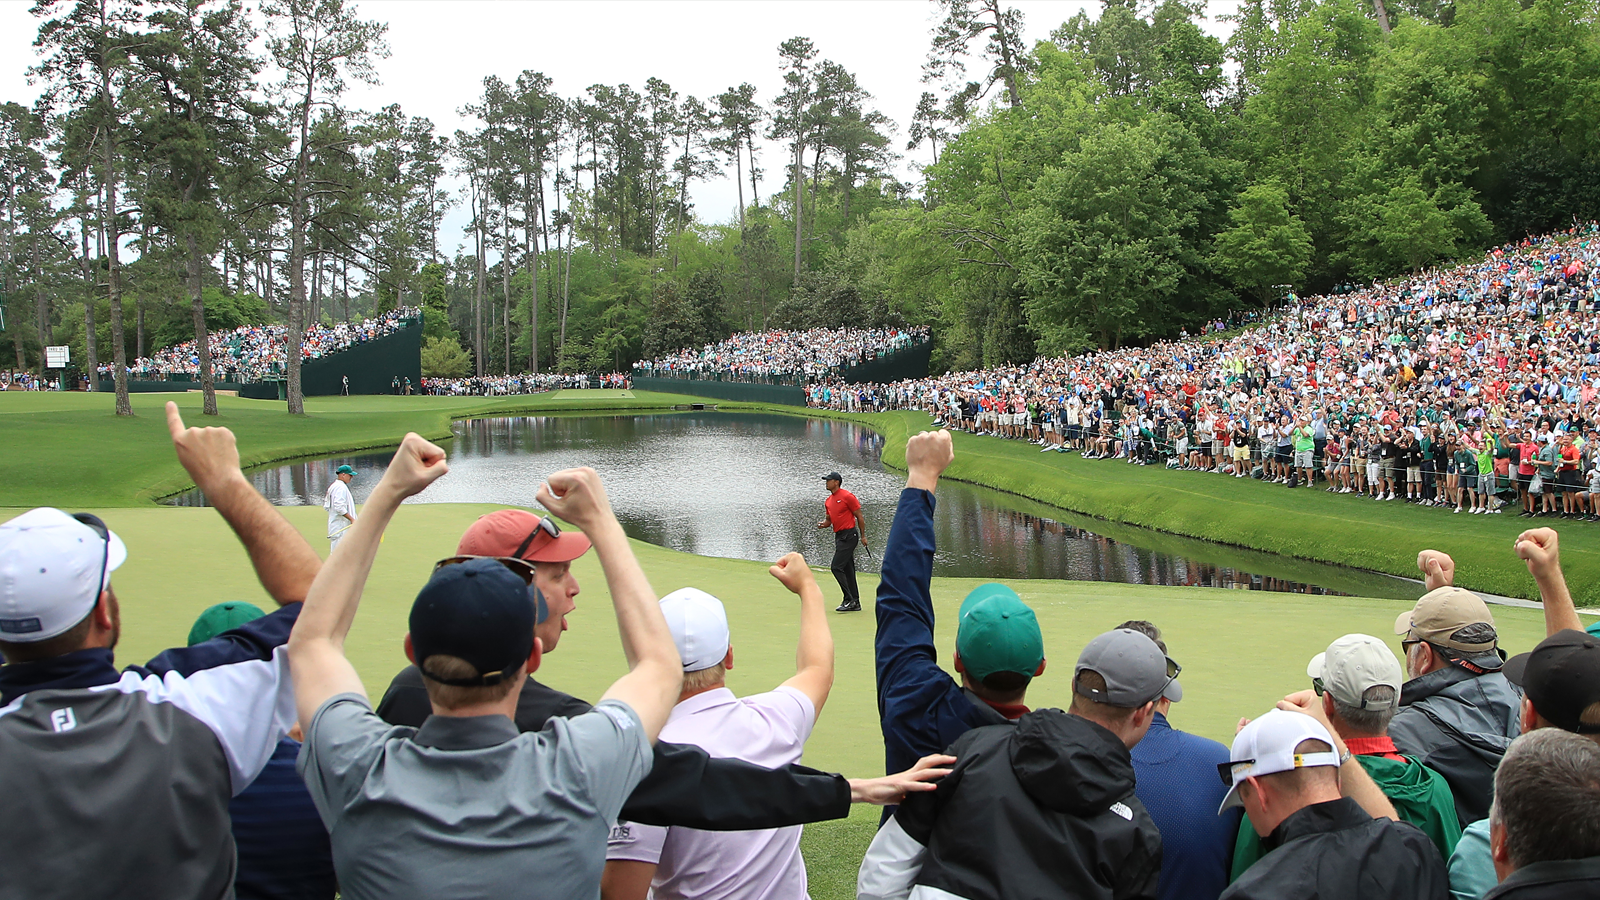 The 16th green at Augusta National Golf Club. (Photo by Andrew Redington/Getty Images)